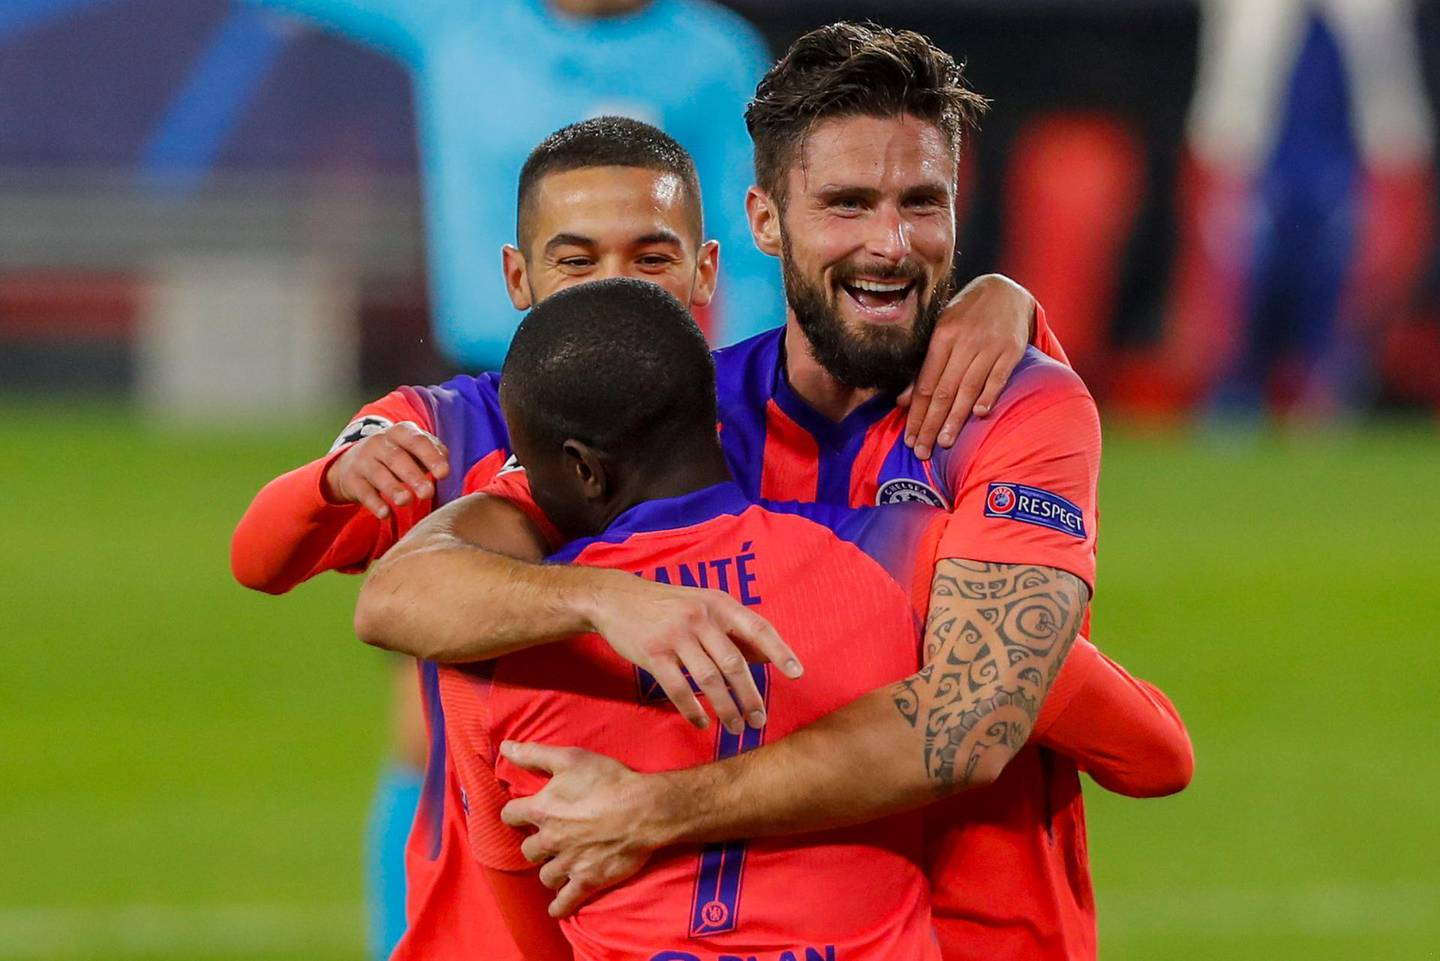 Chelsea's Olivier Giroud celebrates after scoring his side's third goal with teammates during the Champions League group E soccer match between Sevilla and Chelsea at the Ramon Sanchez Pijuan stadium in Seville, Spain, Wednesday, Dec. 2, 2020. (AP Photo/Angel Fernandez)